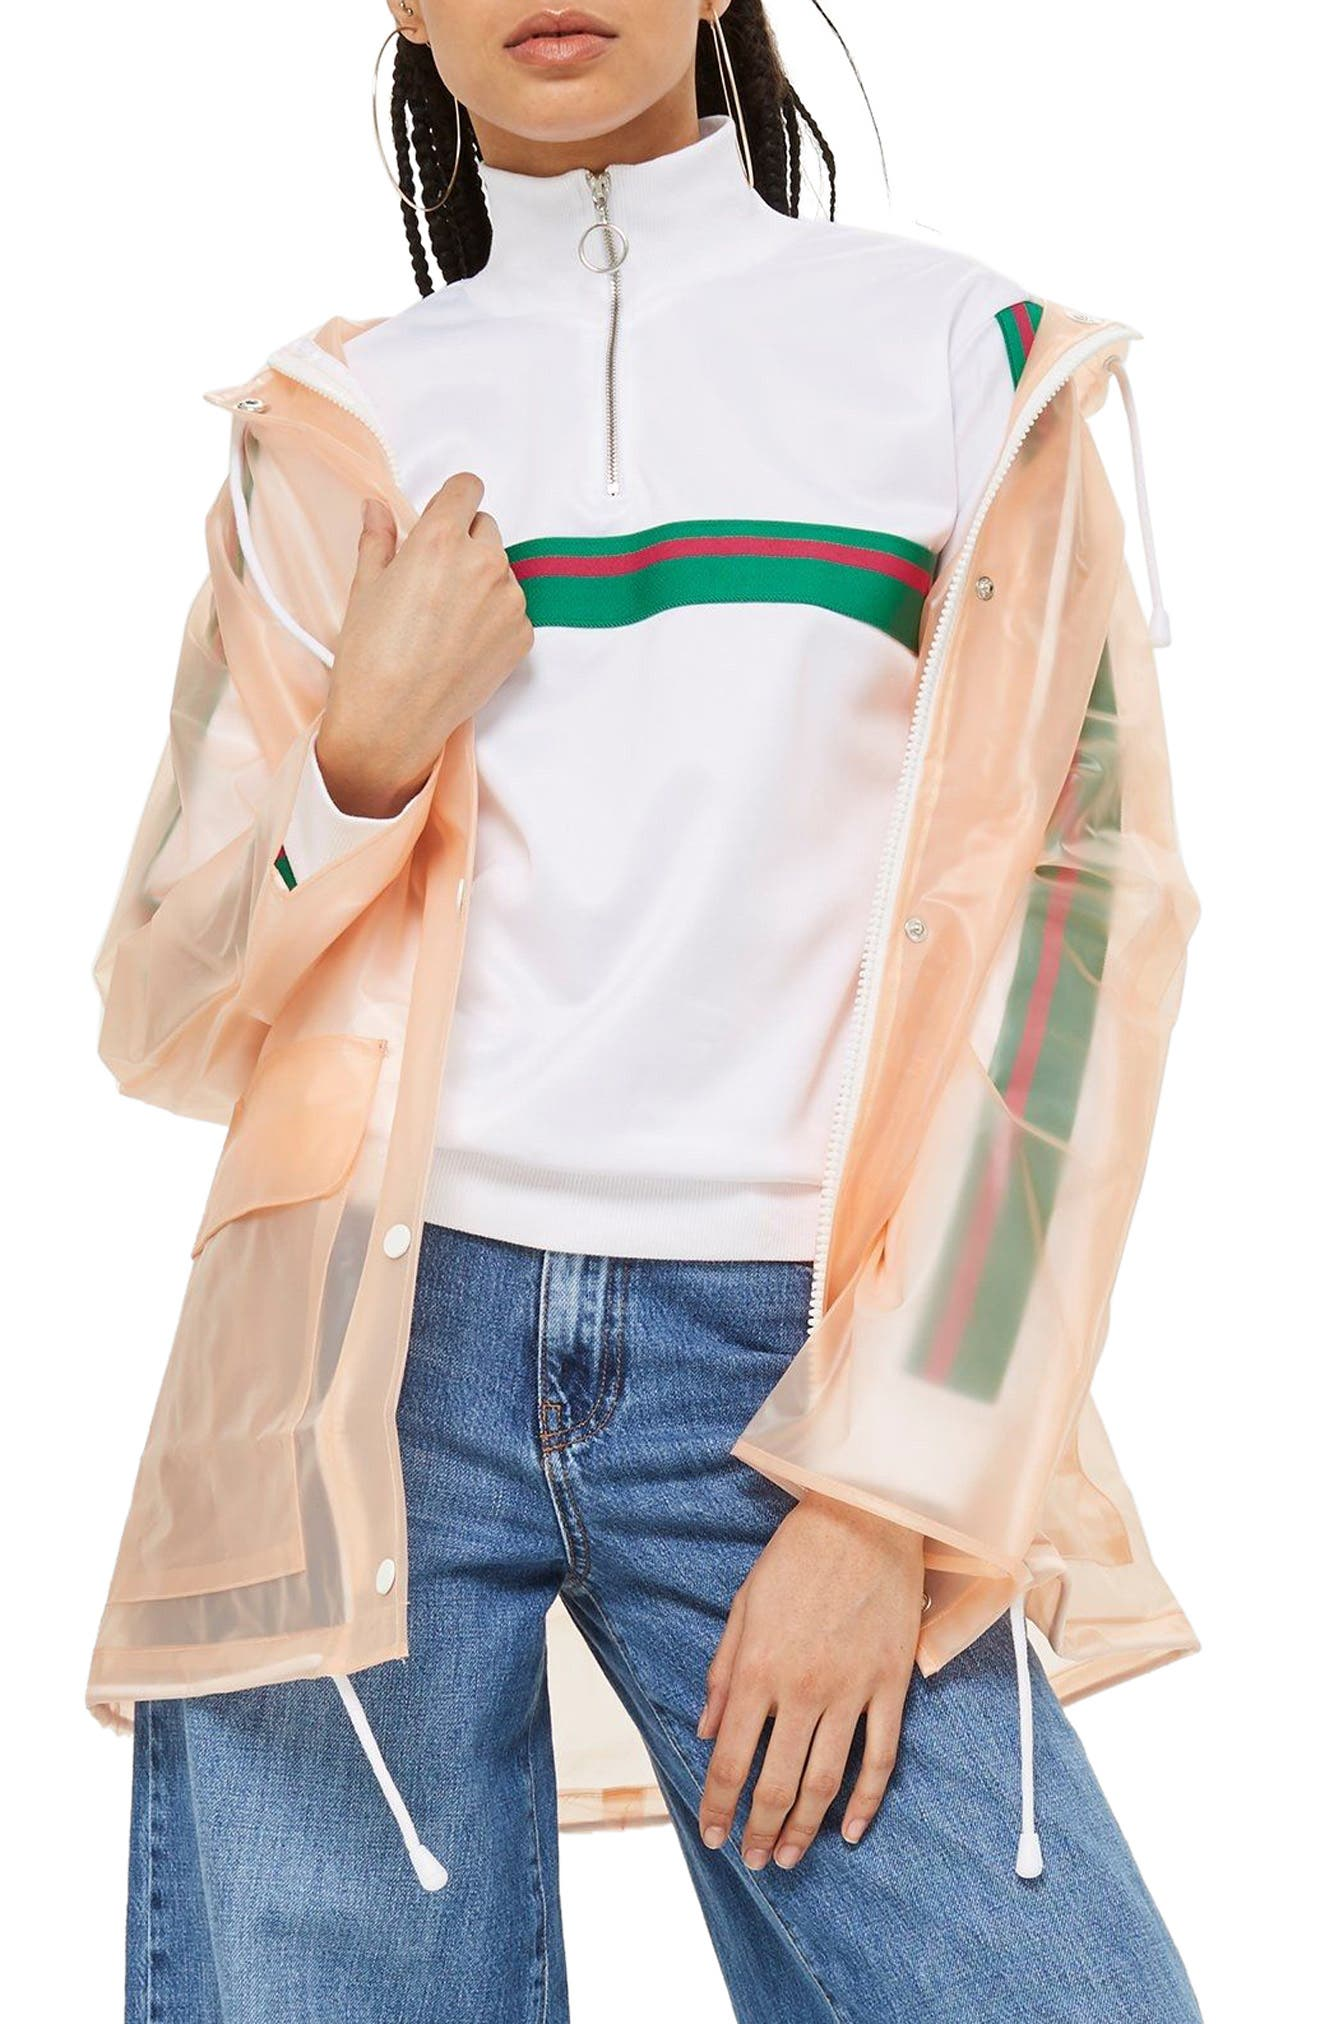 Frosted Marge Mac Rain Jacket,                         Main,                         color, 950